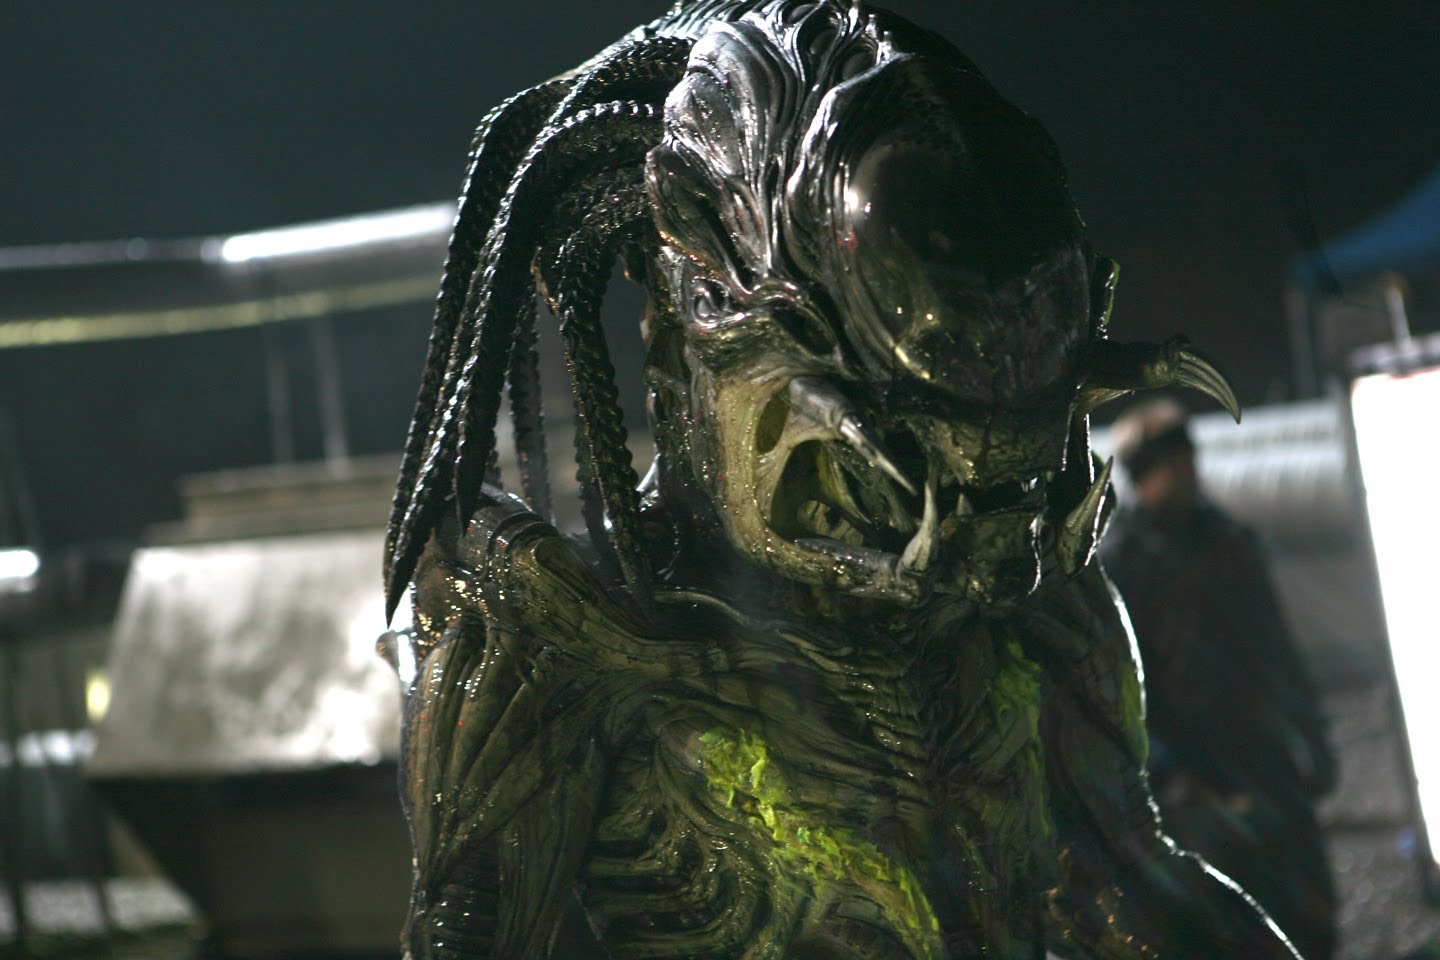 Aliens-vs-Predator-Requiem-AvP-R-Pred-Alien-Sculpting-Hybrid-Predator-With-Alien-wallpaper-wp5004411